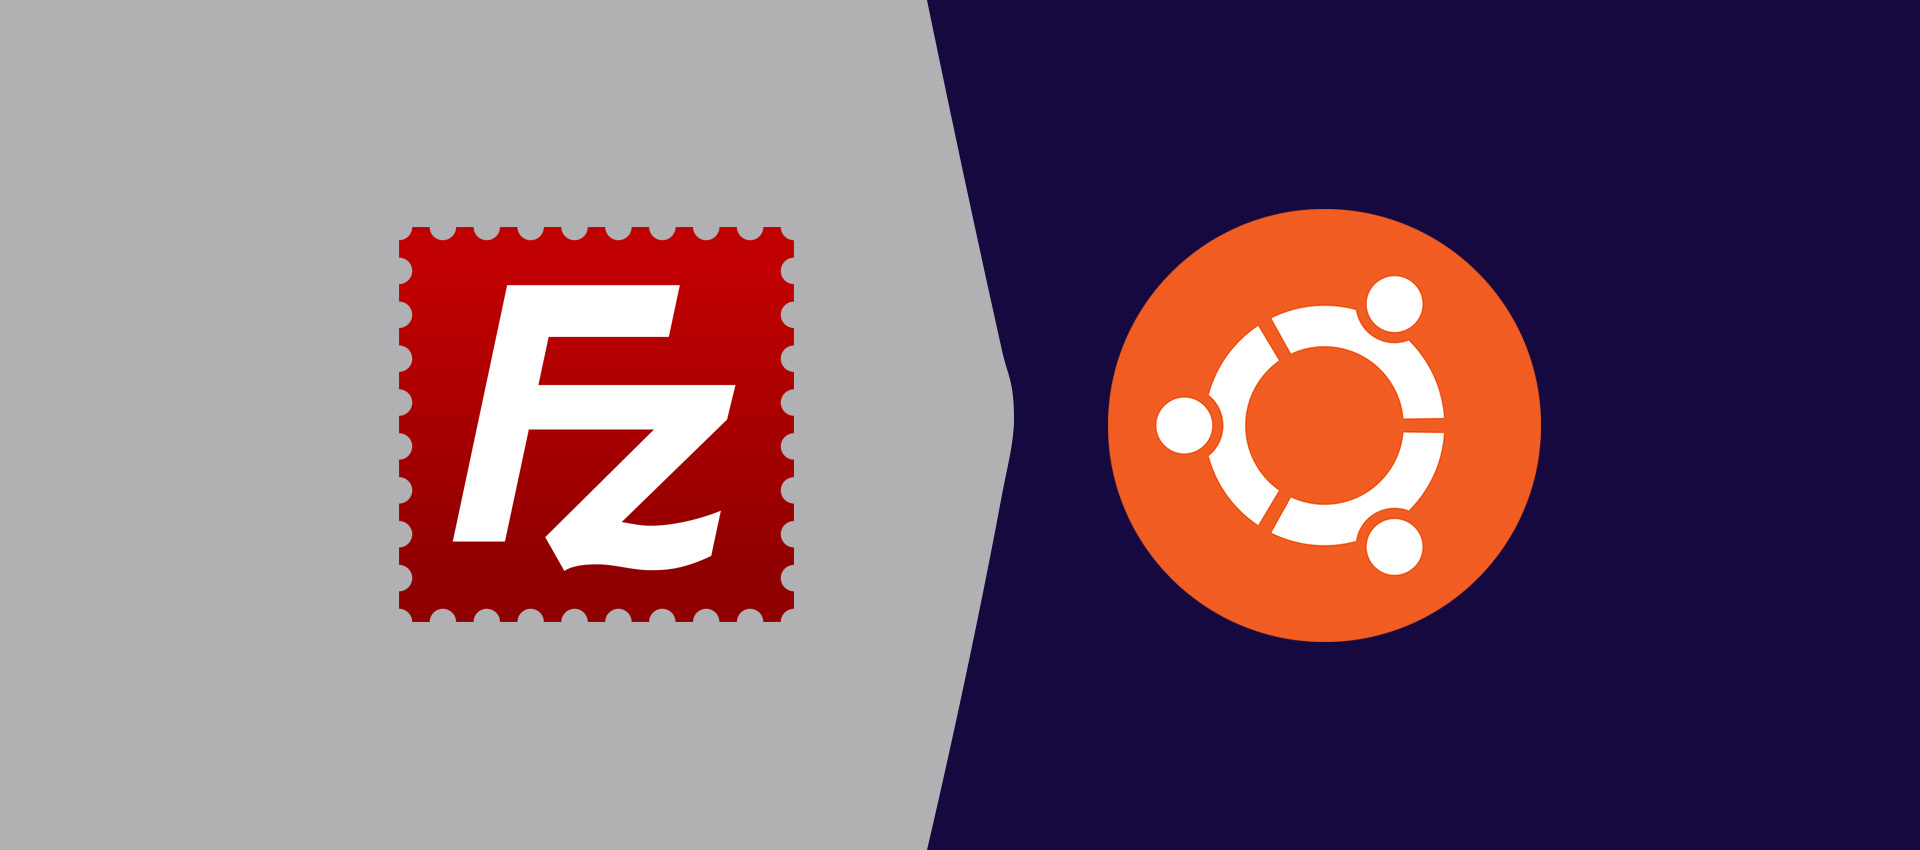 How To Install FileZilla FTP Client On Ubuntu 20.04 LTS